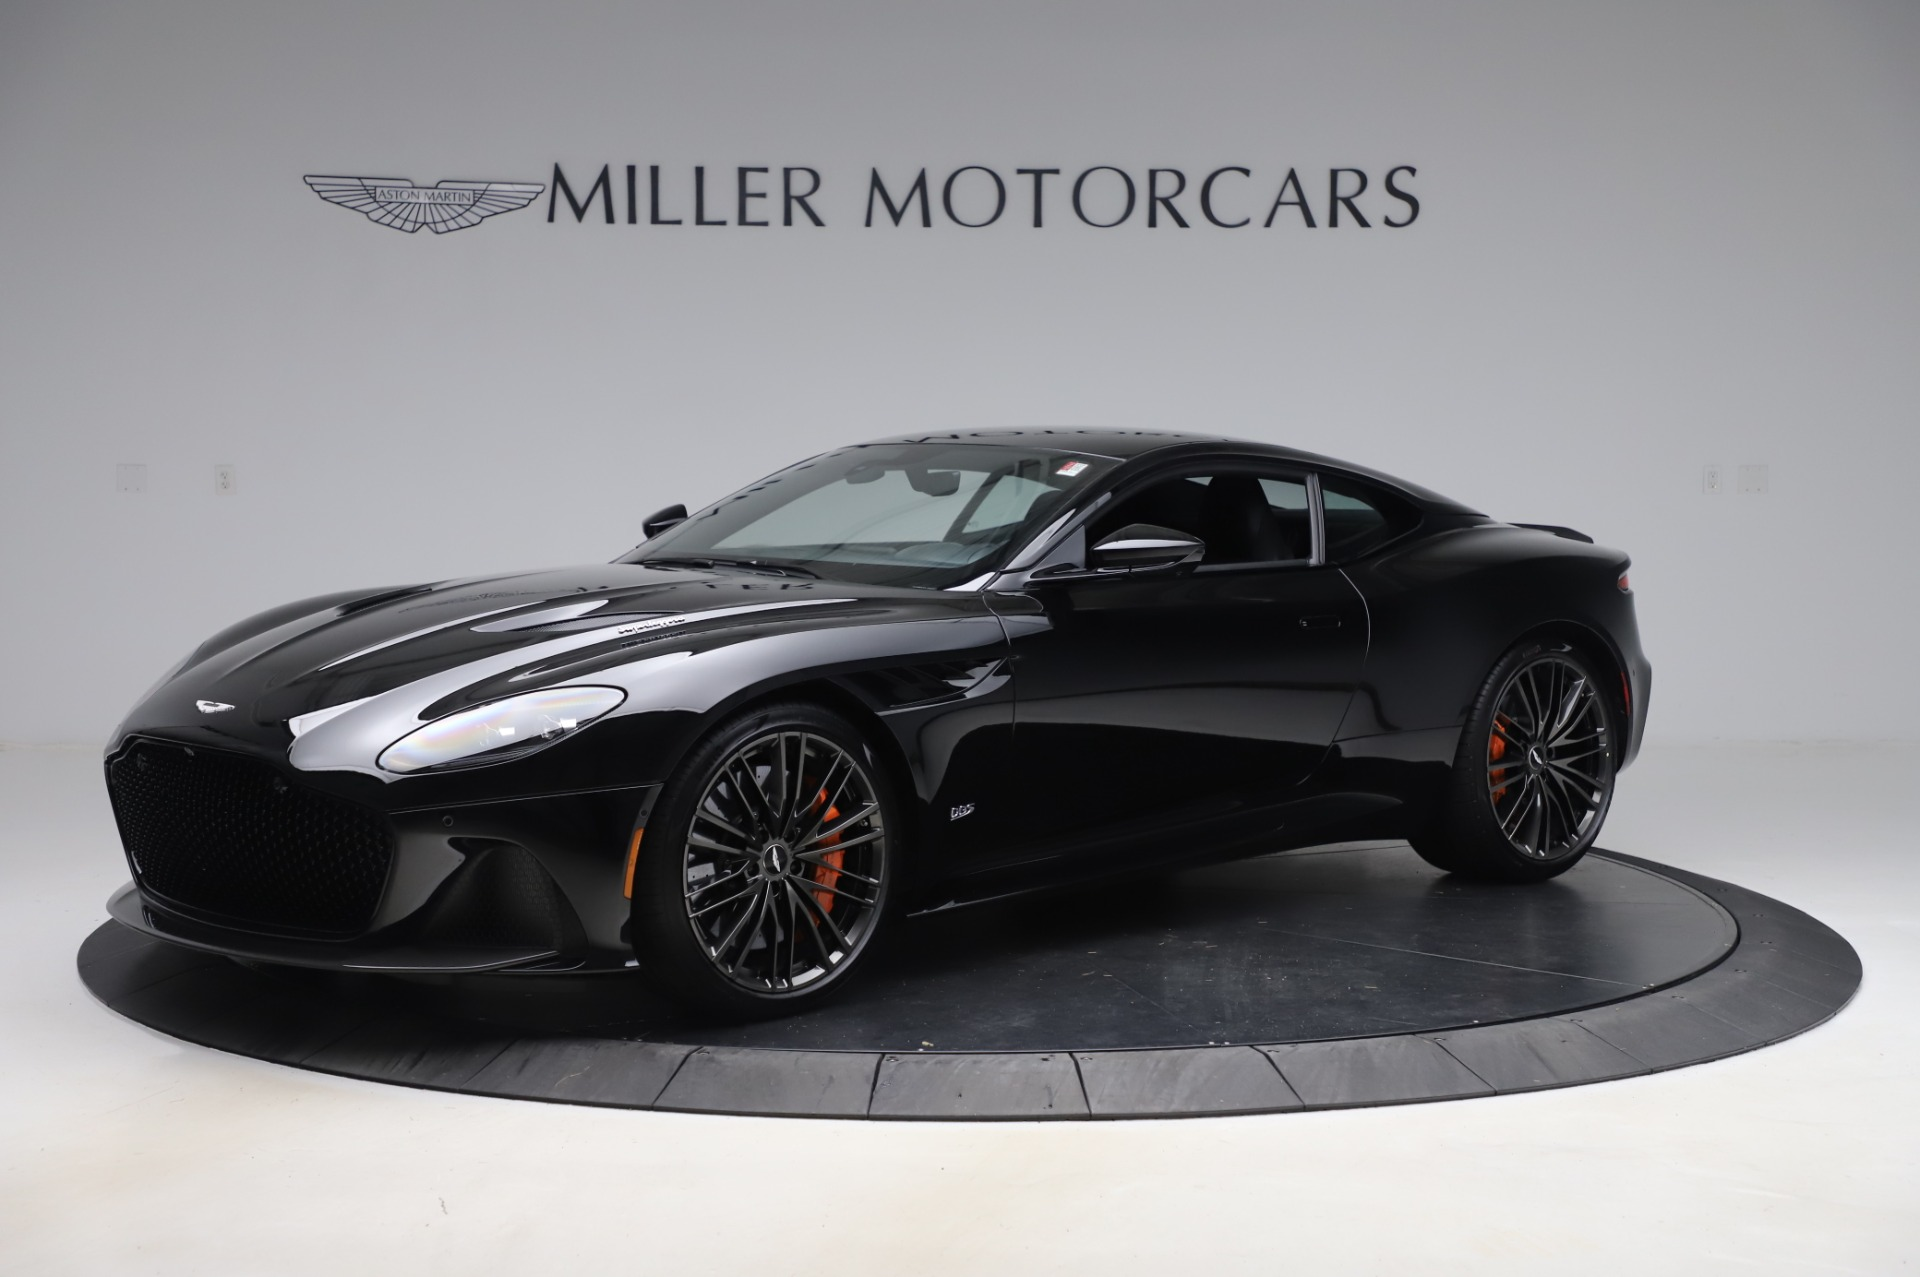 New 2020 Aston Martin DBS Superleggera Coupe for sale $328,786 at Bentley Greenwich in Greenwich CT 06830 1